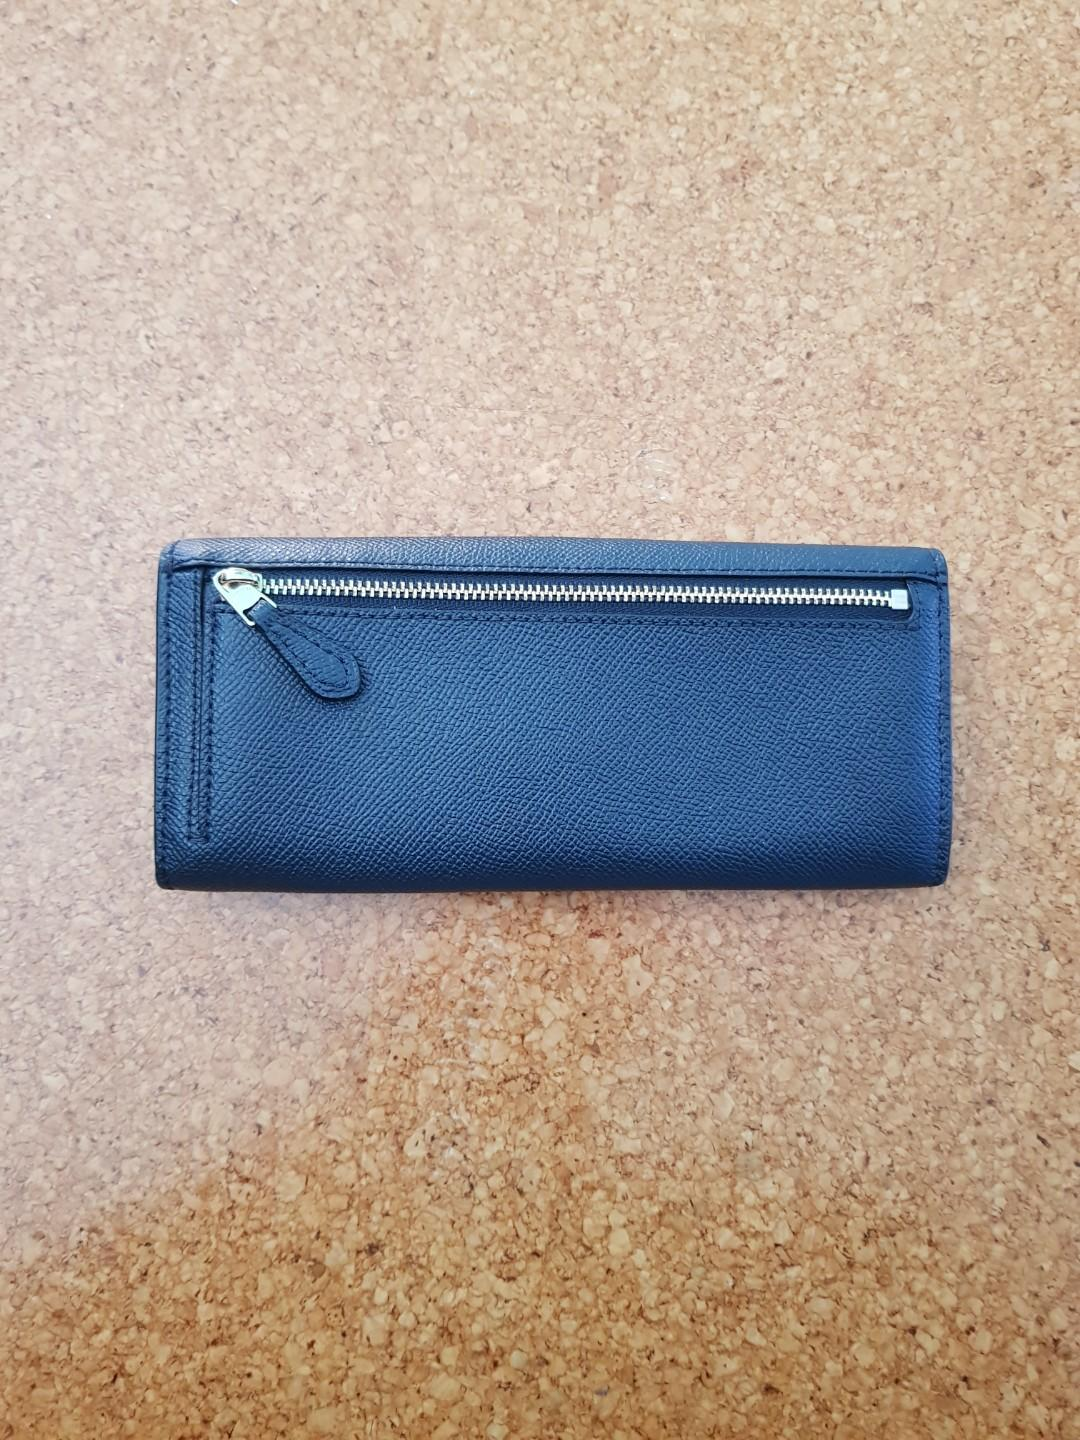 Coach Crossgain leather Wallet( Navy)